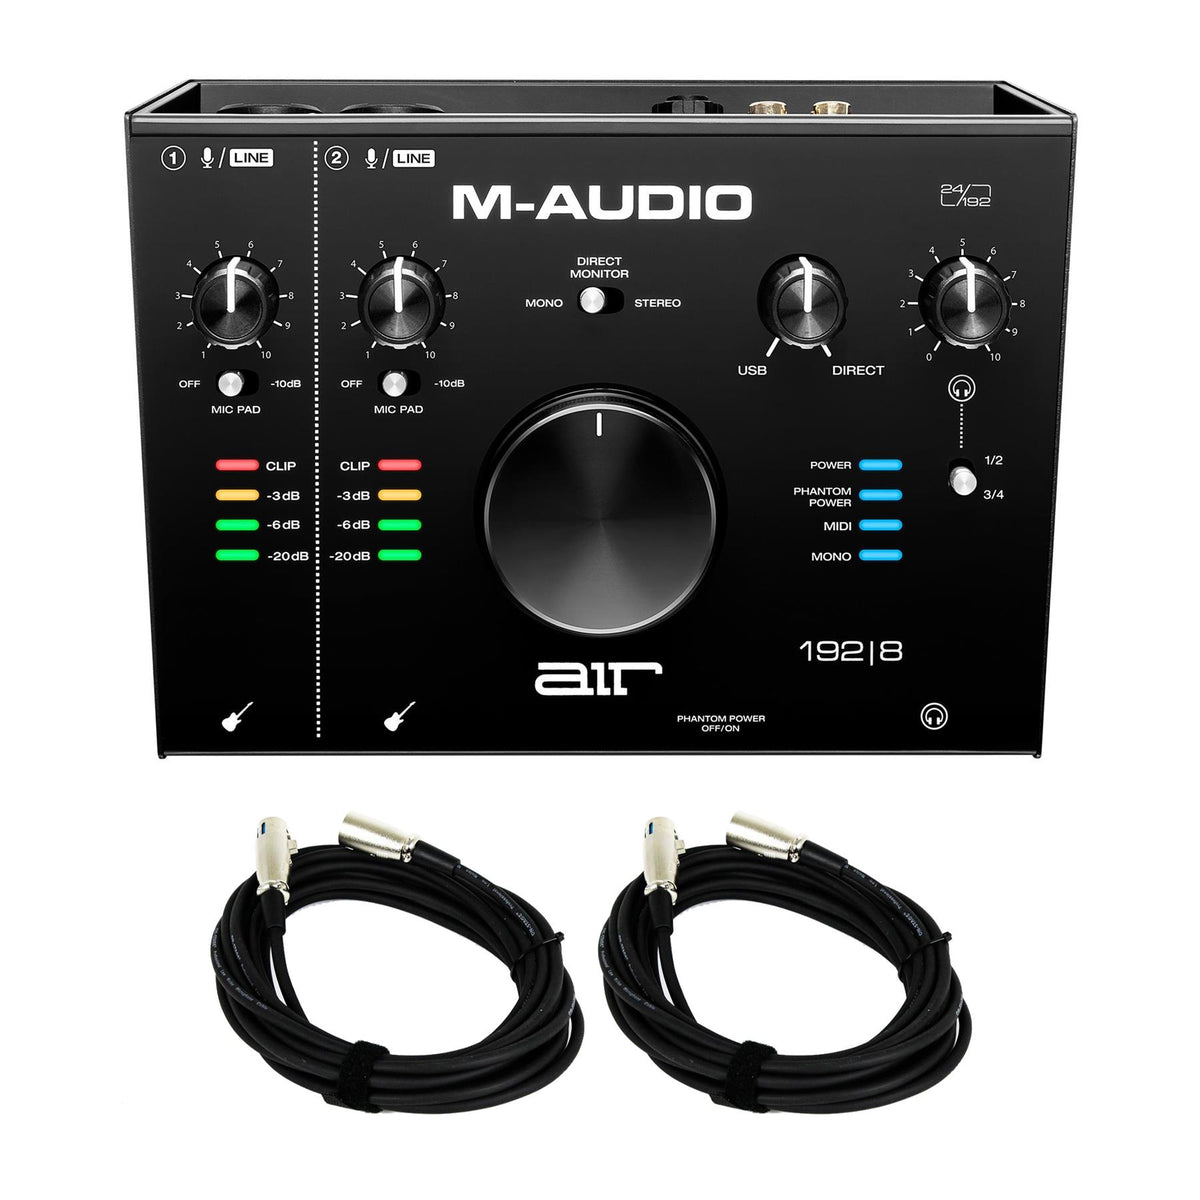 M-Audio Air 192|8 USB Interface Bundle with 2 20-foot XLR Cables